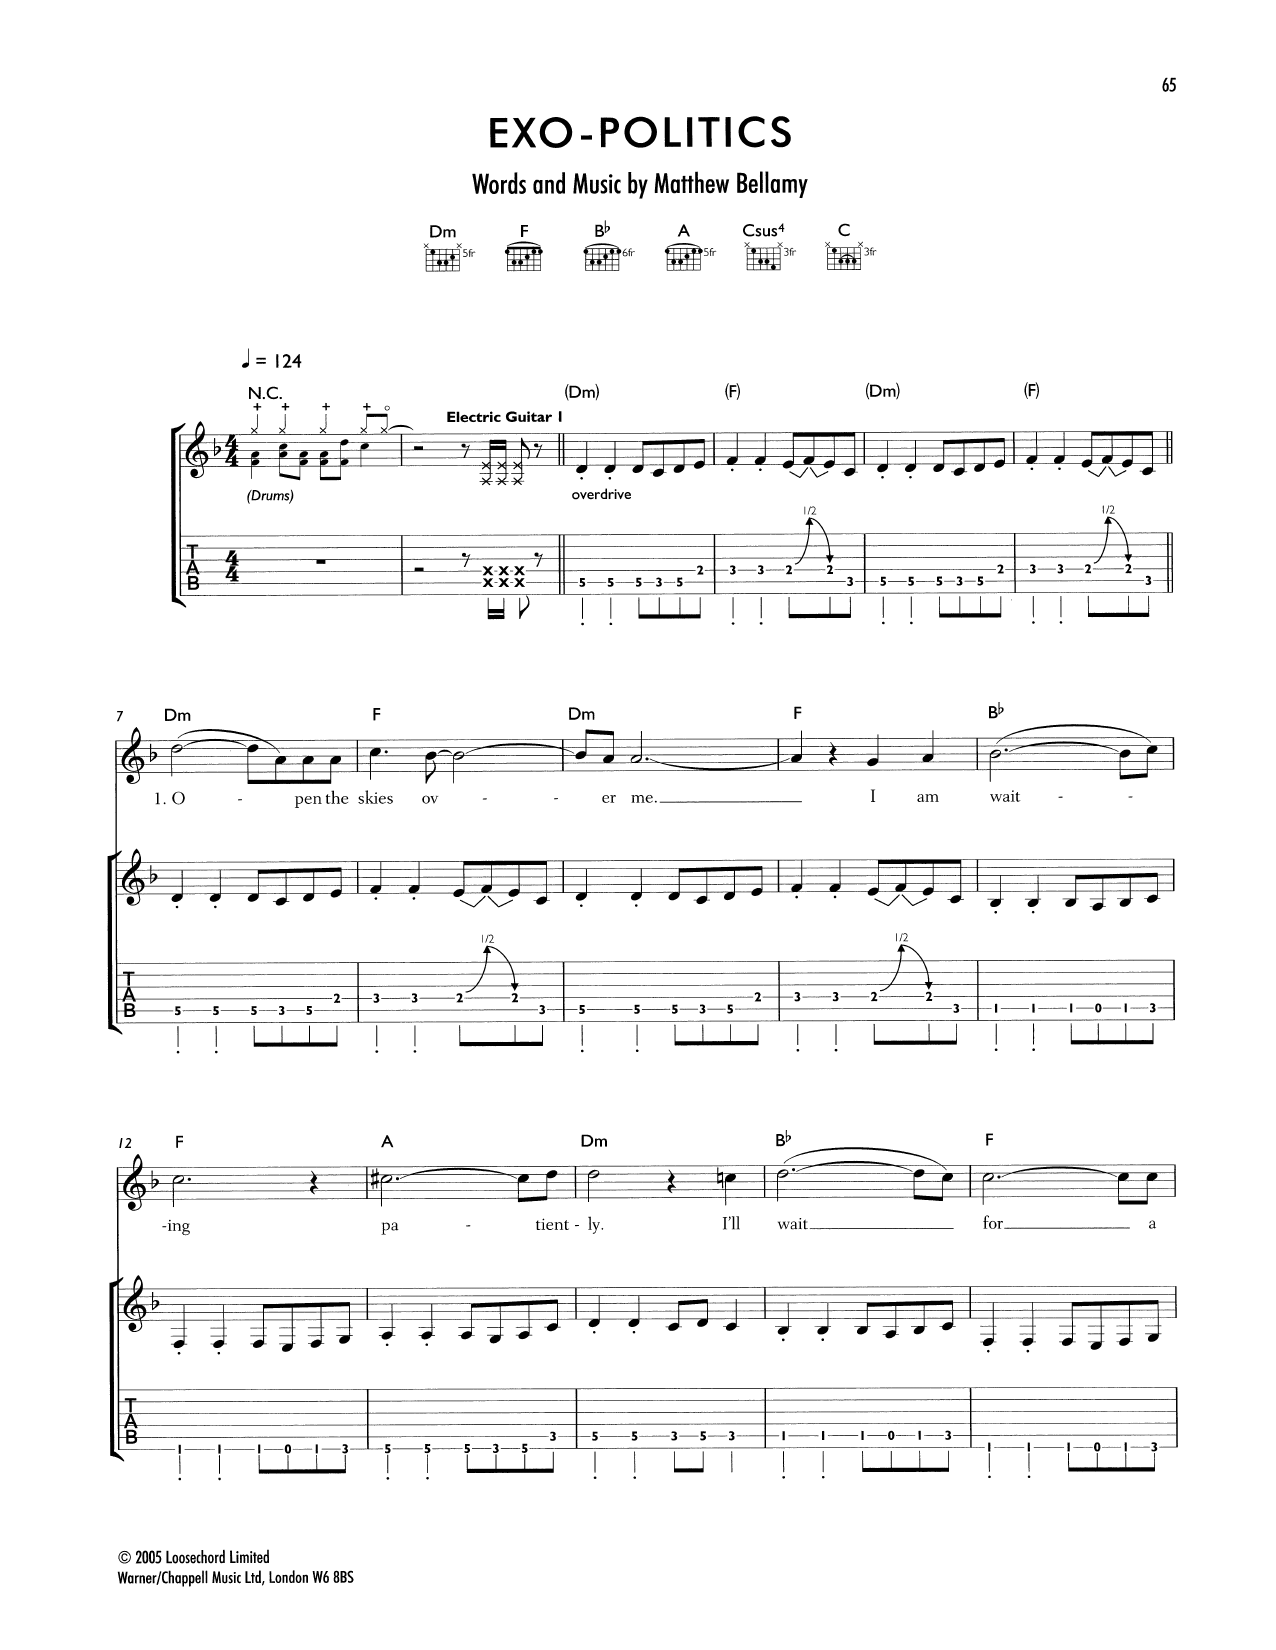 Exo-Politics Sheet Music